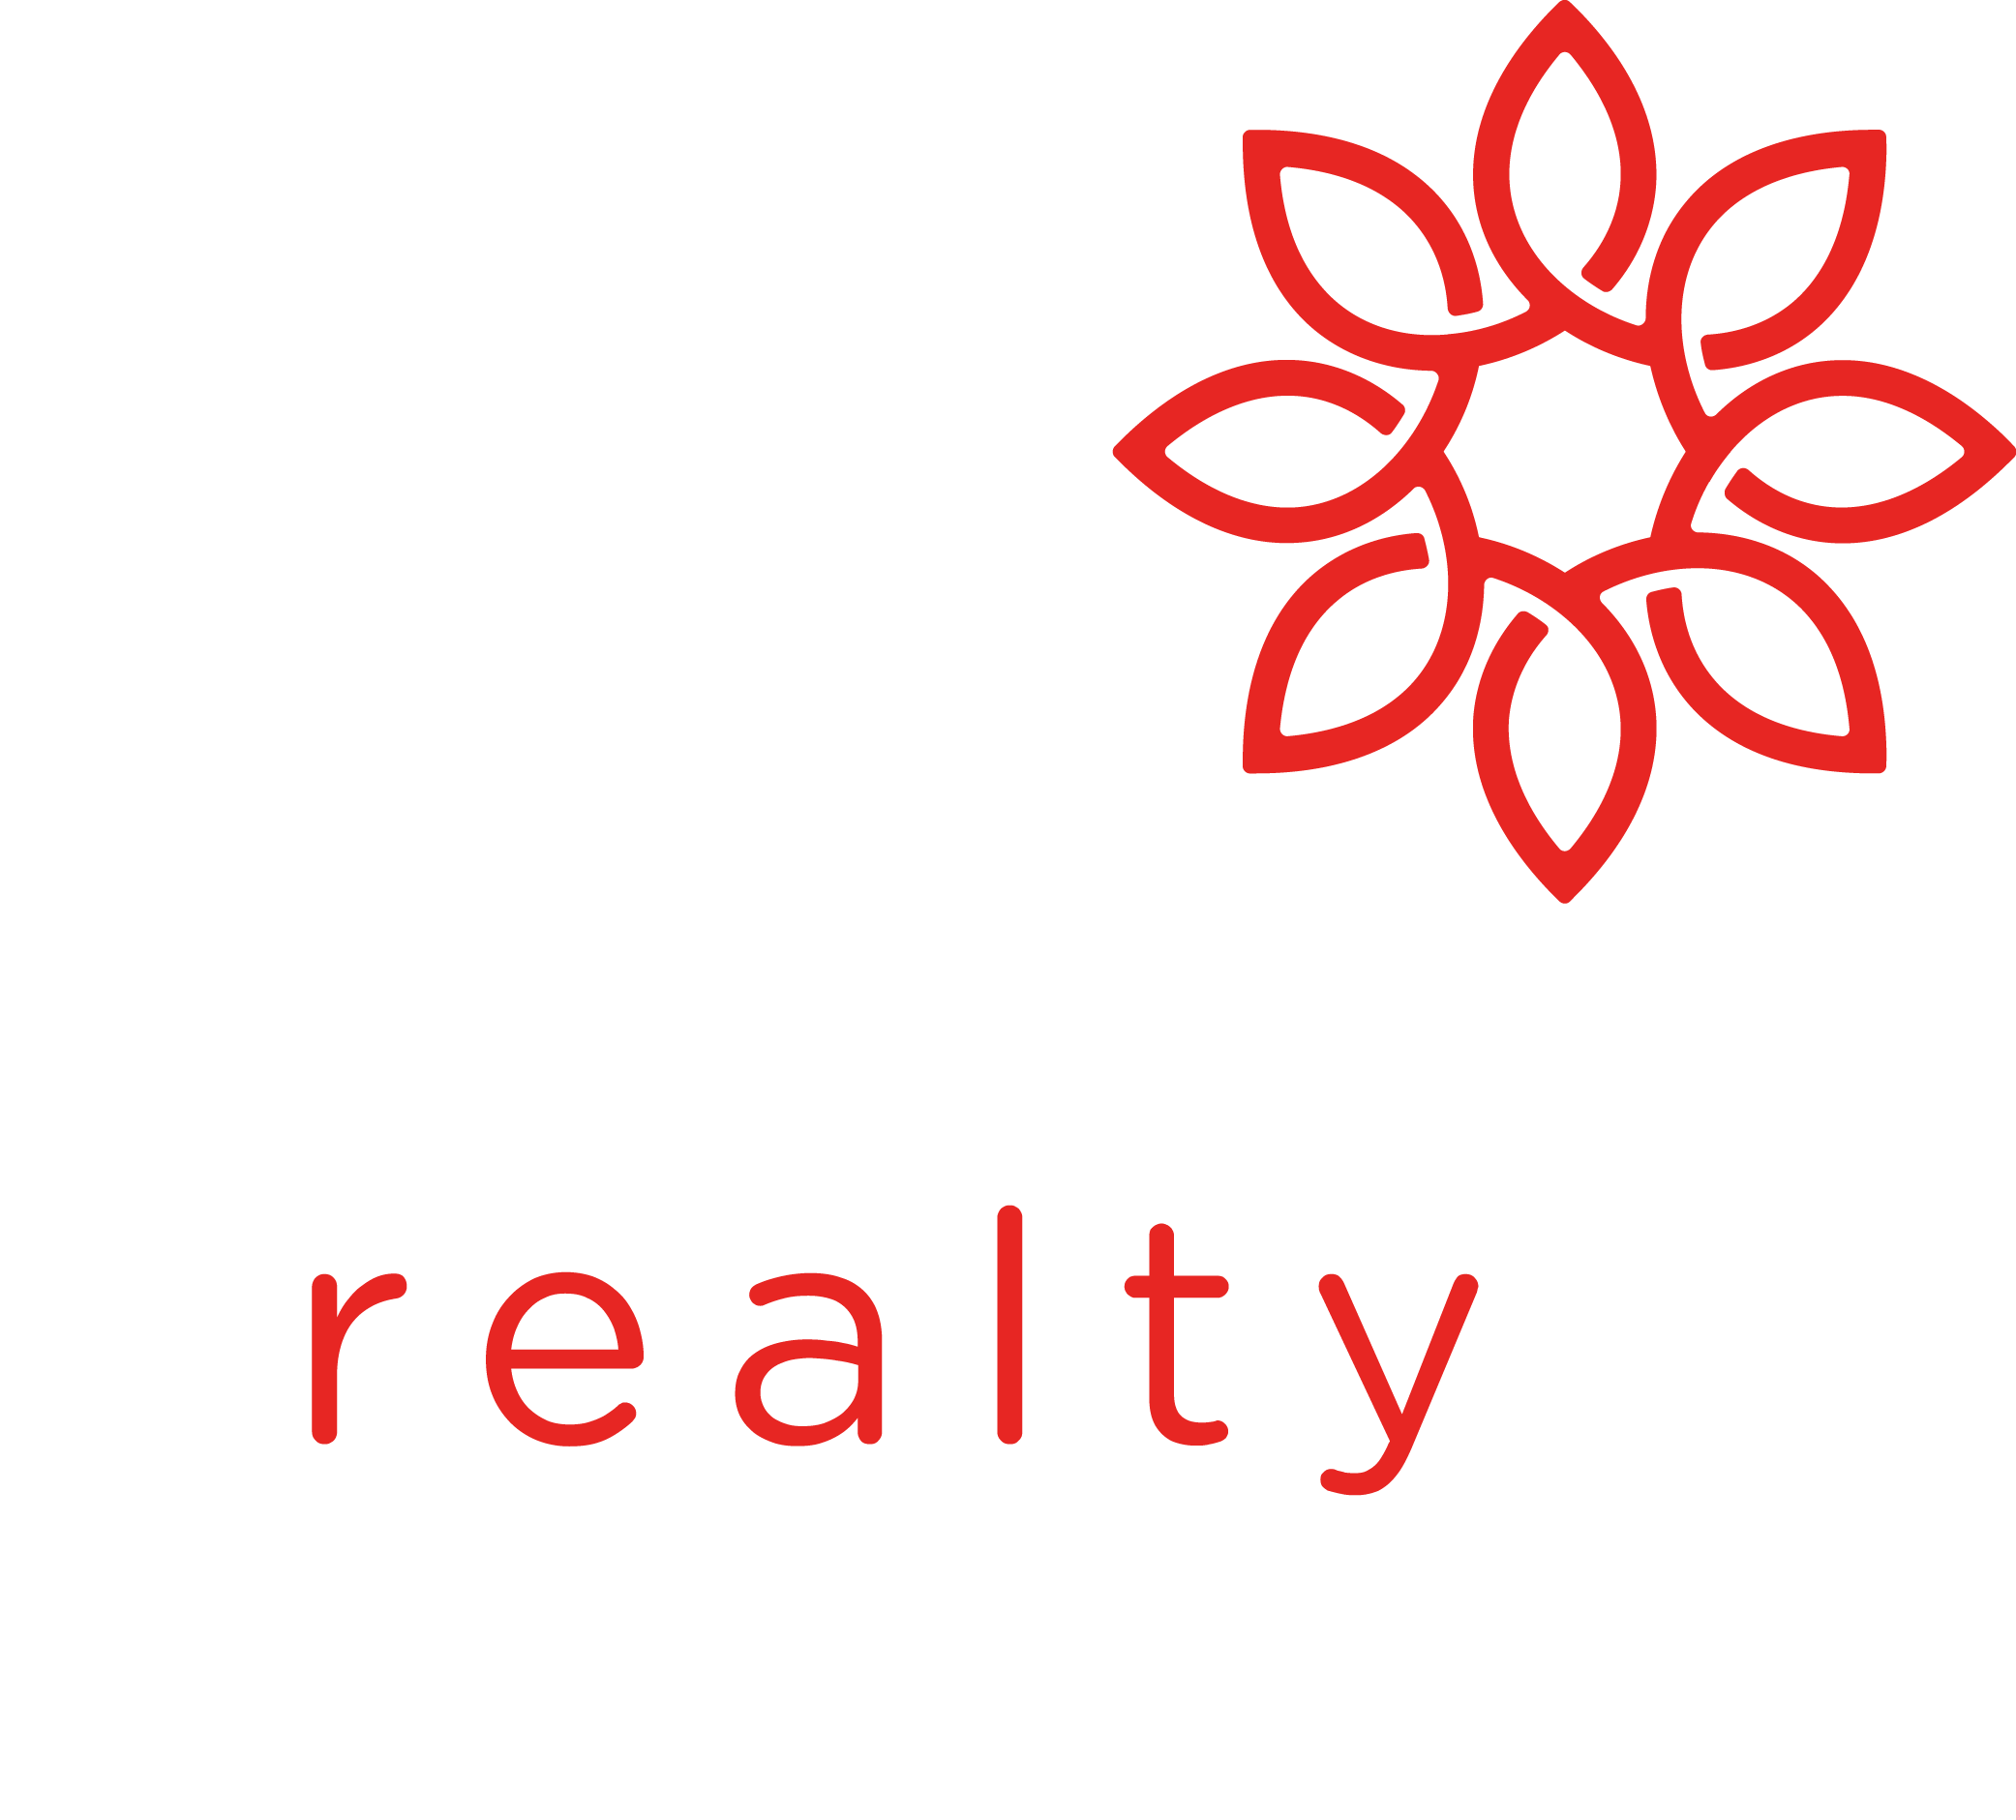 Cunic Realty